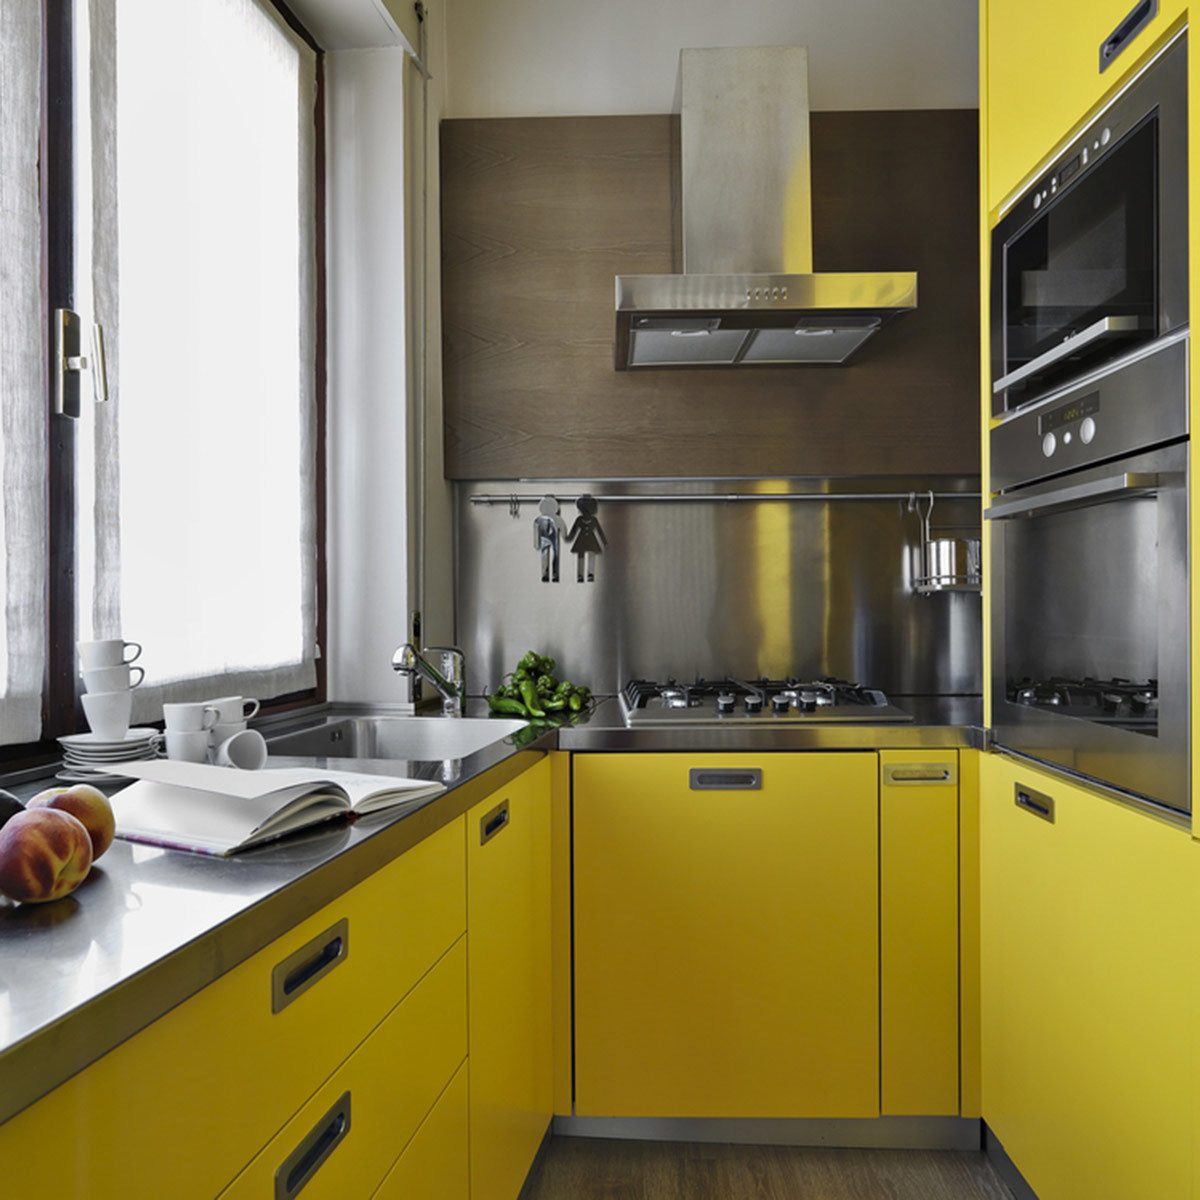 Popular Kitchen Cabinet Colors: Sunny Yellow